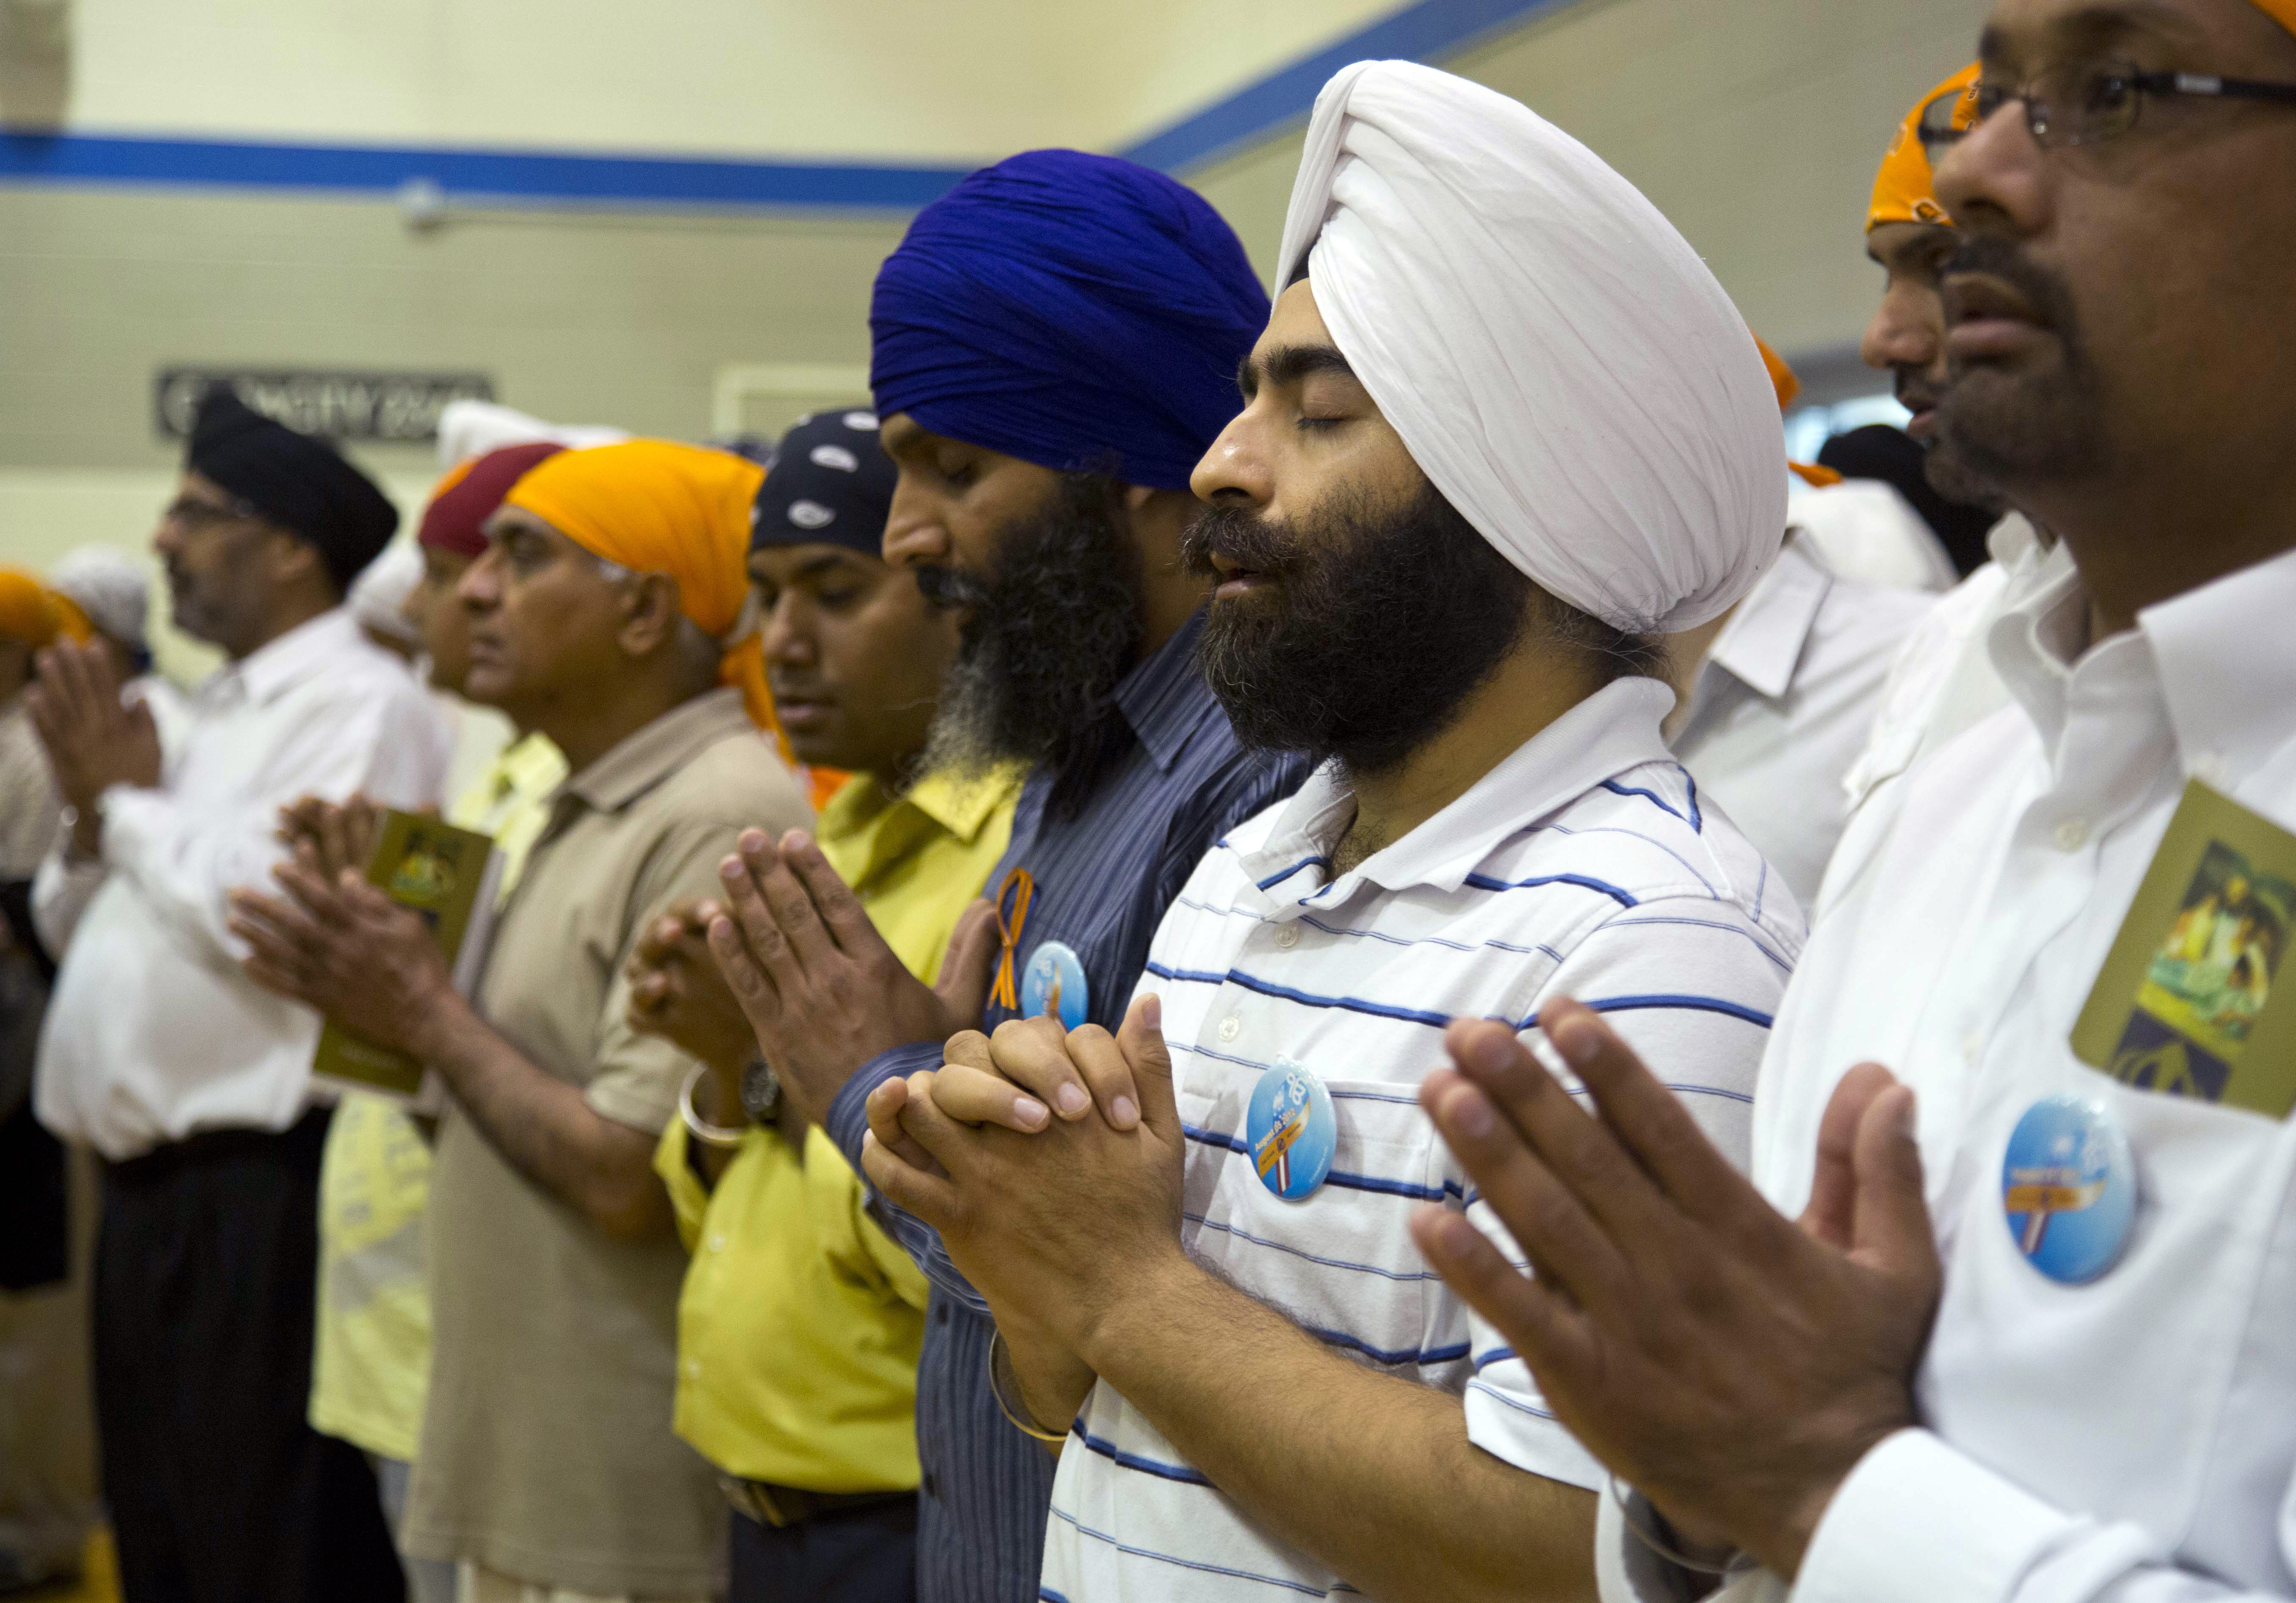 Sikh man cites religion in lawsuit against gun controls